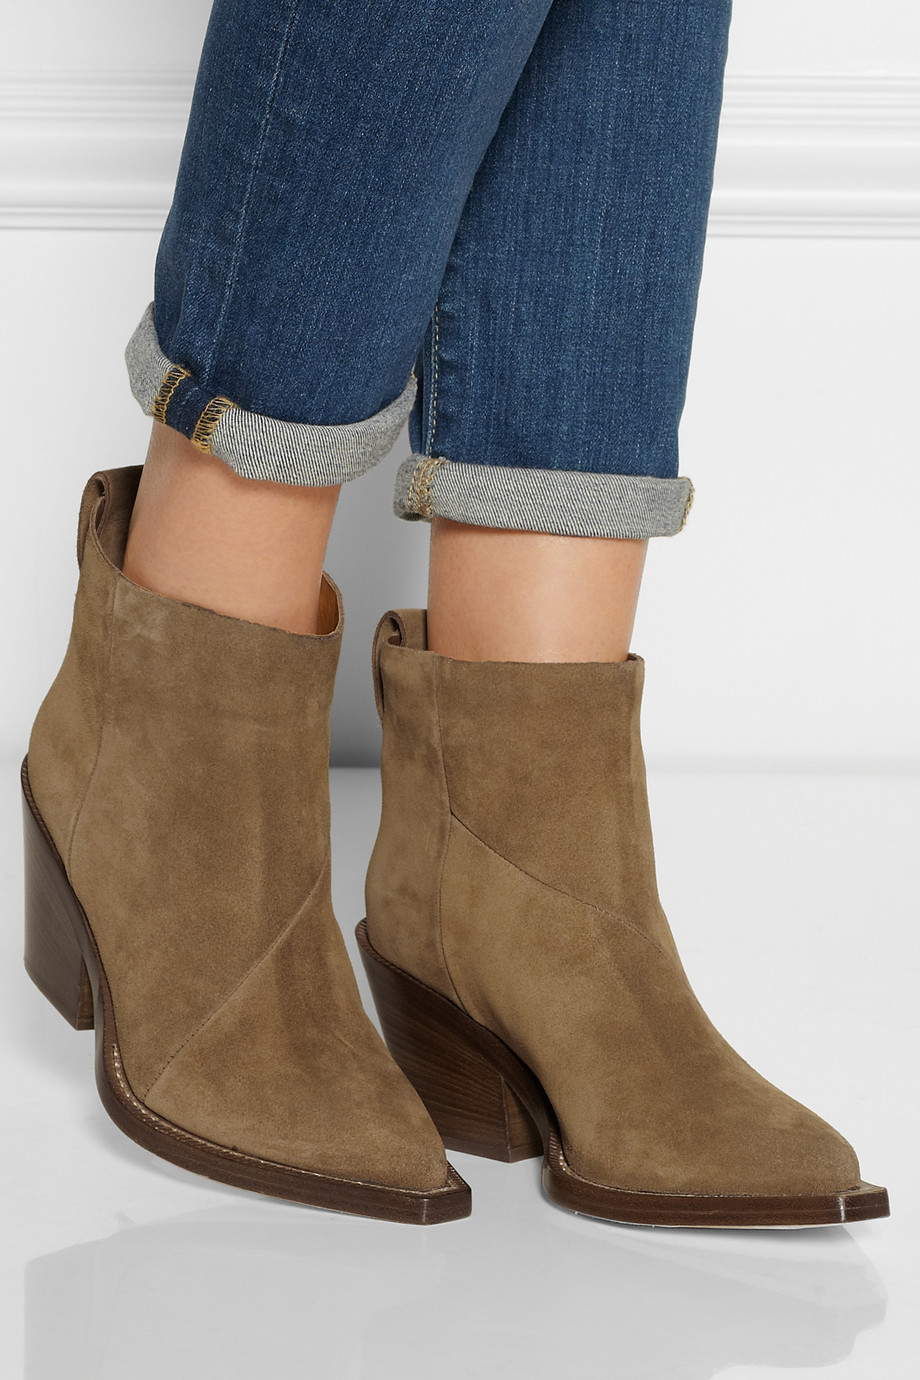 73dd63e4913 Acne Studios Donna Suede Ankle Boots in Brown - Lyst